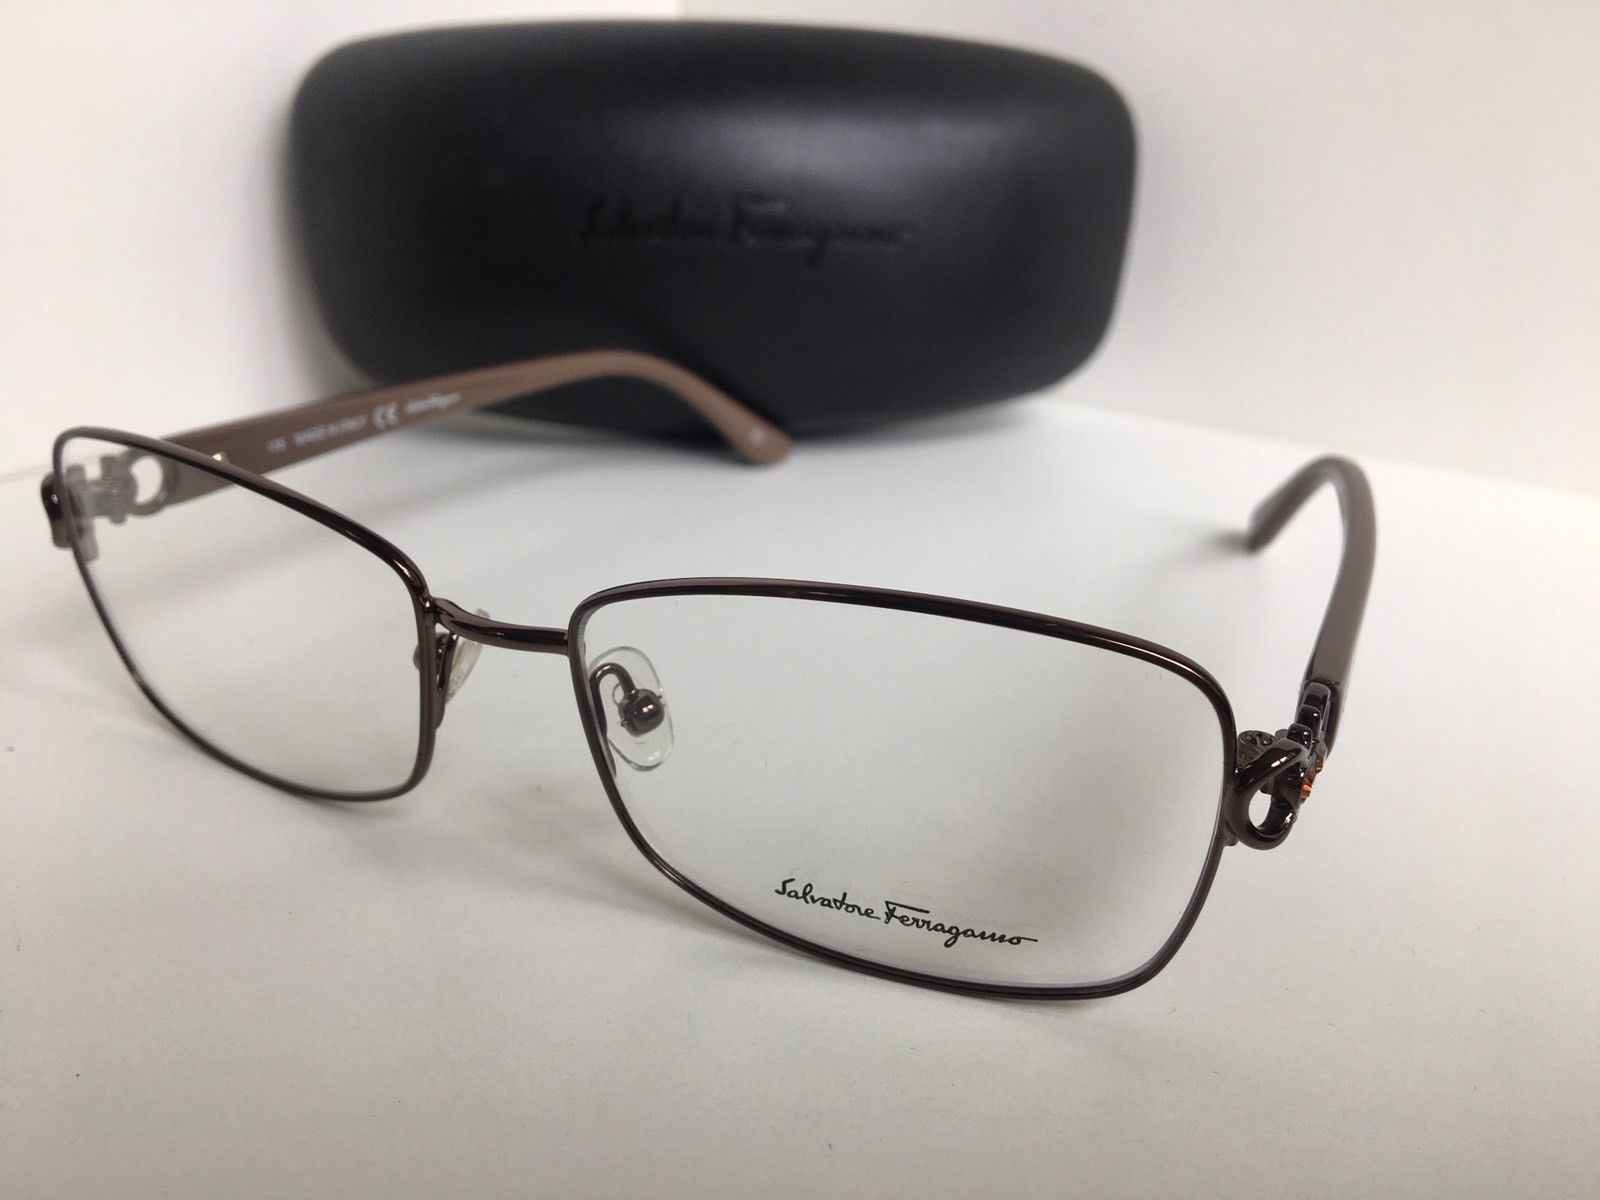 a7ea92d23b New Salvatore Ferragamo SF 2105R SF2105R 210 54mm Shiny Brown Eyeglasses